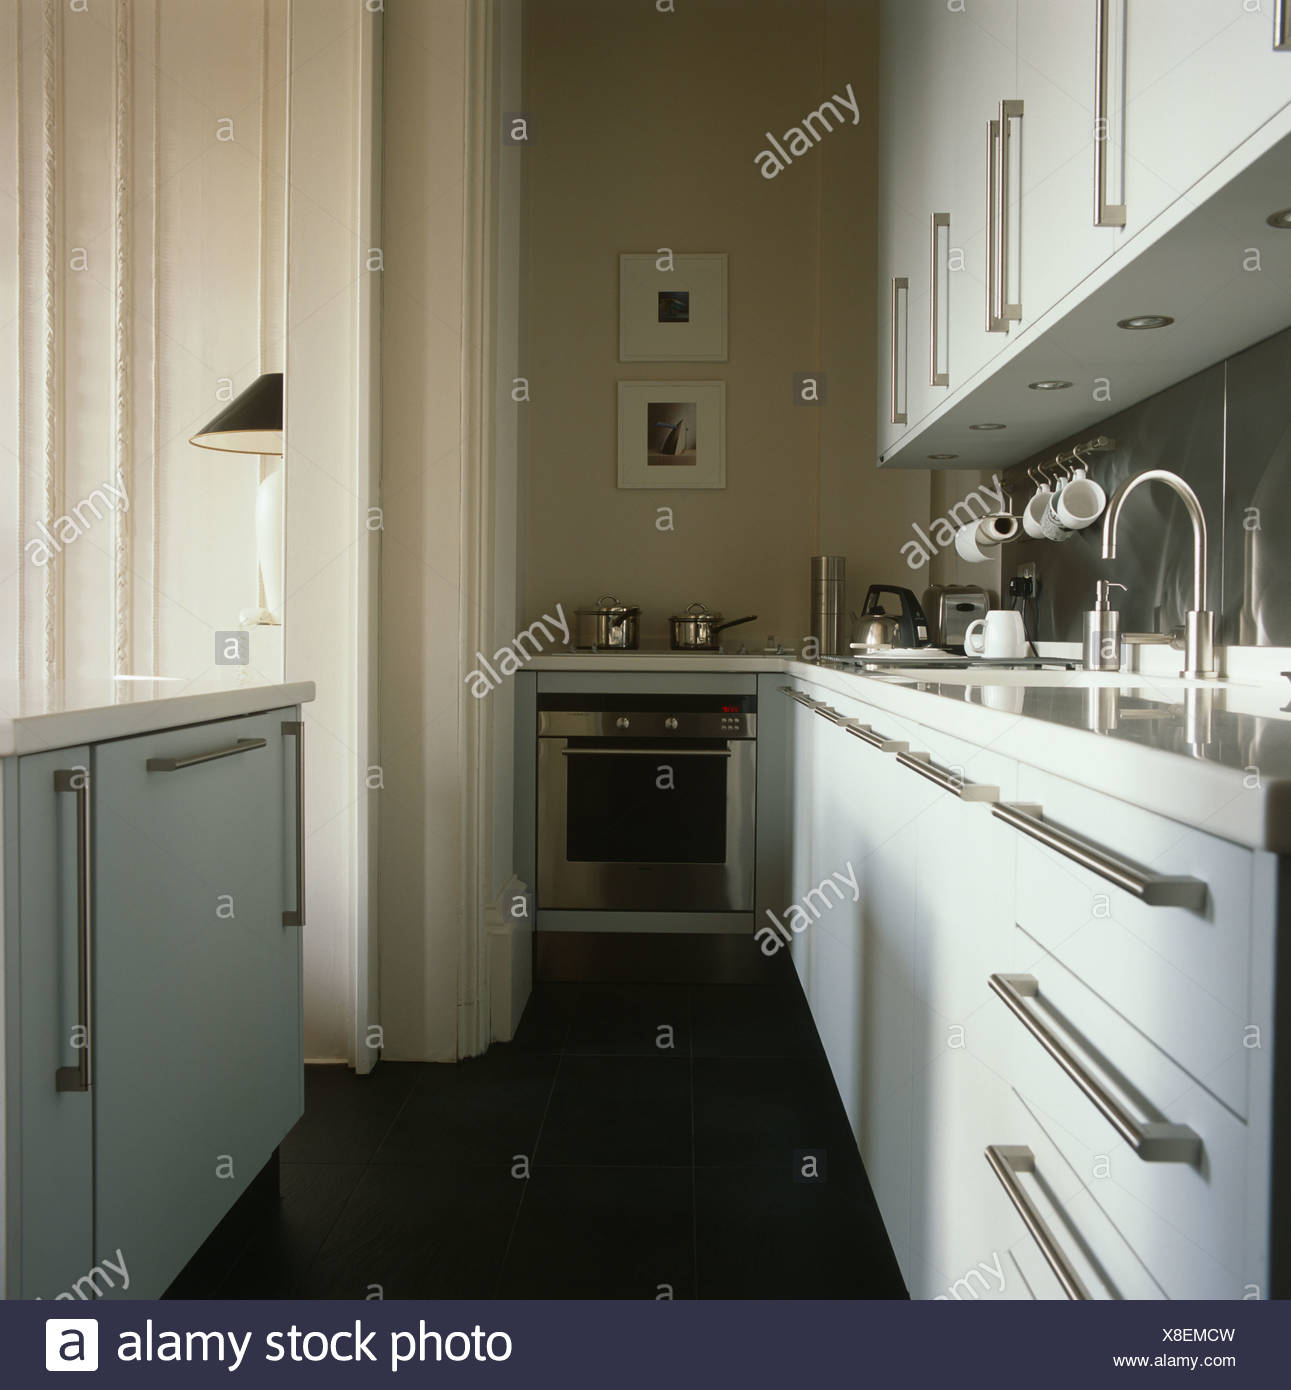 Brushed Steel Handles On White Cabinets In Galley Kitchen With Slate Flooring And Stainless Oven